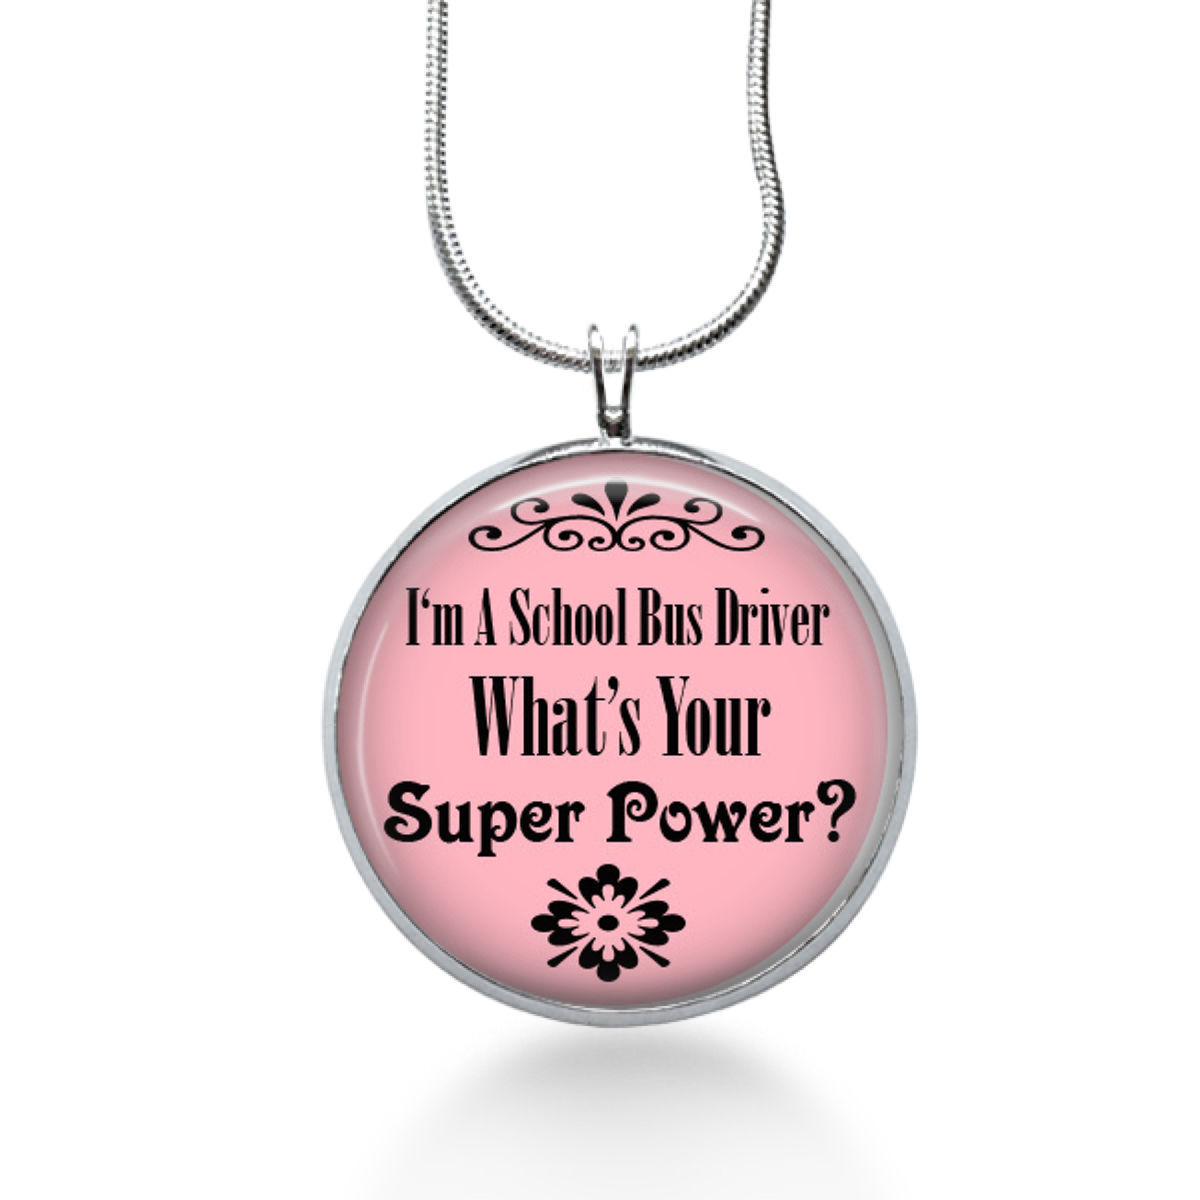 Primary image for Bus Driver Necklace, round necklace, bus driver gift, school bus driver, jewelry